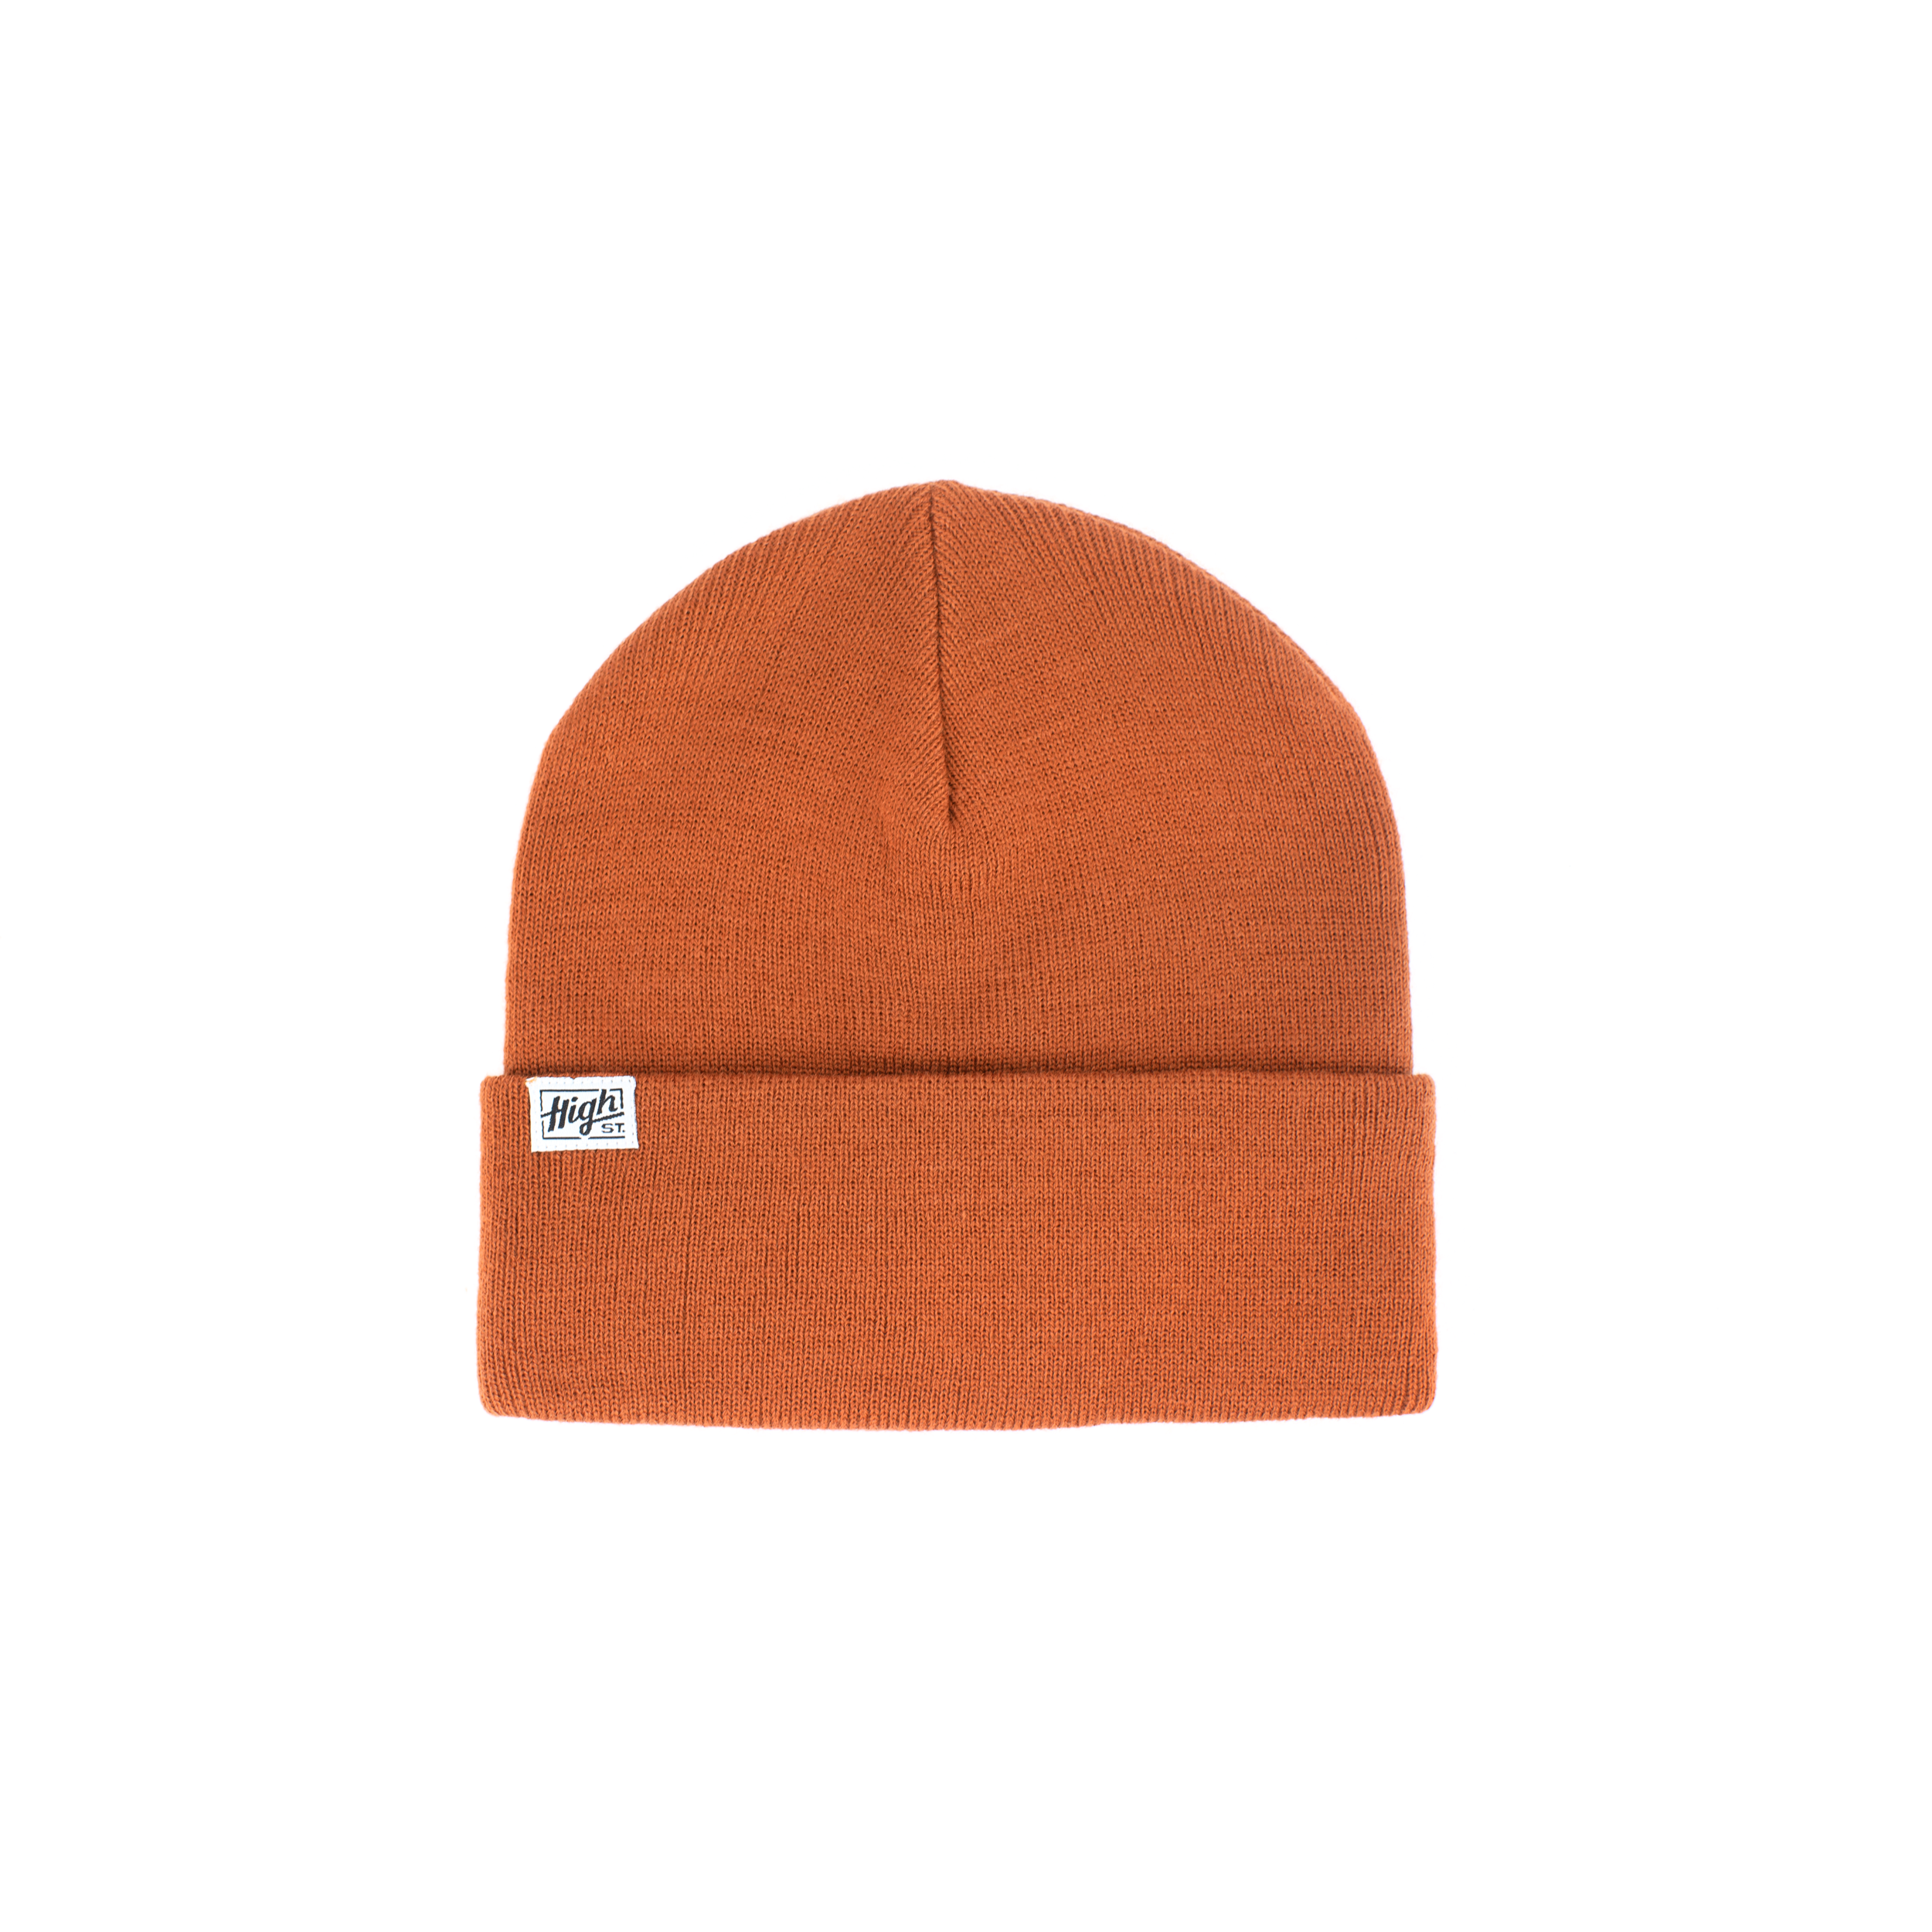 Burnt Orange Png - BURNT ORANGE | DELI LOGO BEANIE — High Street Deli